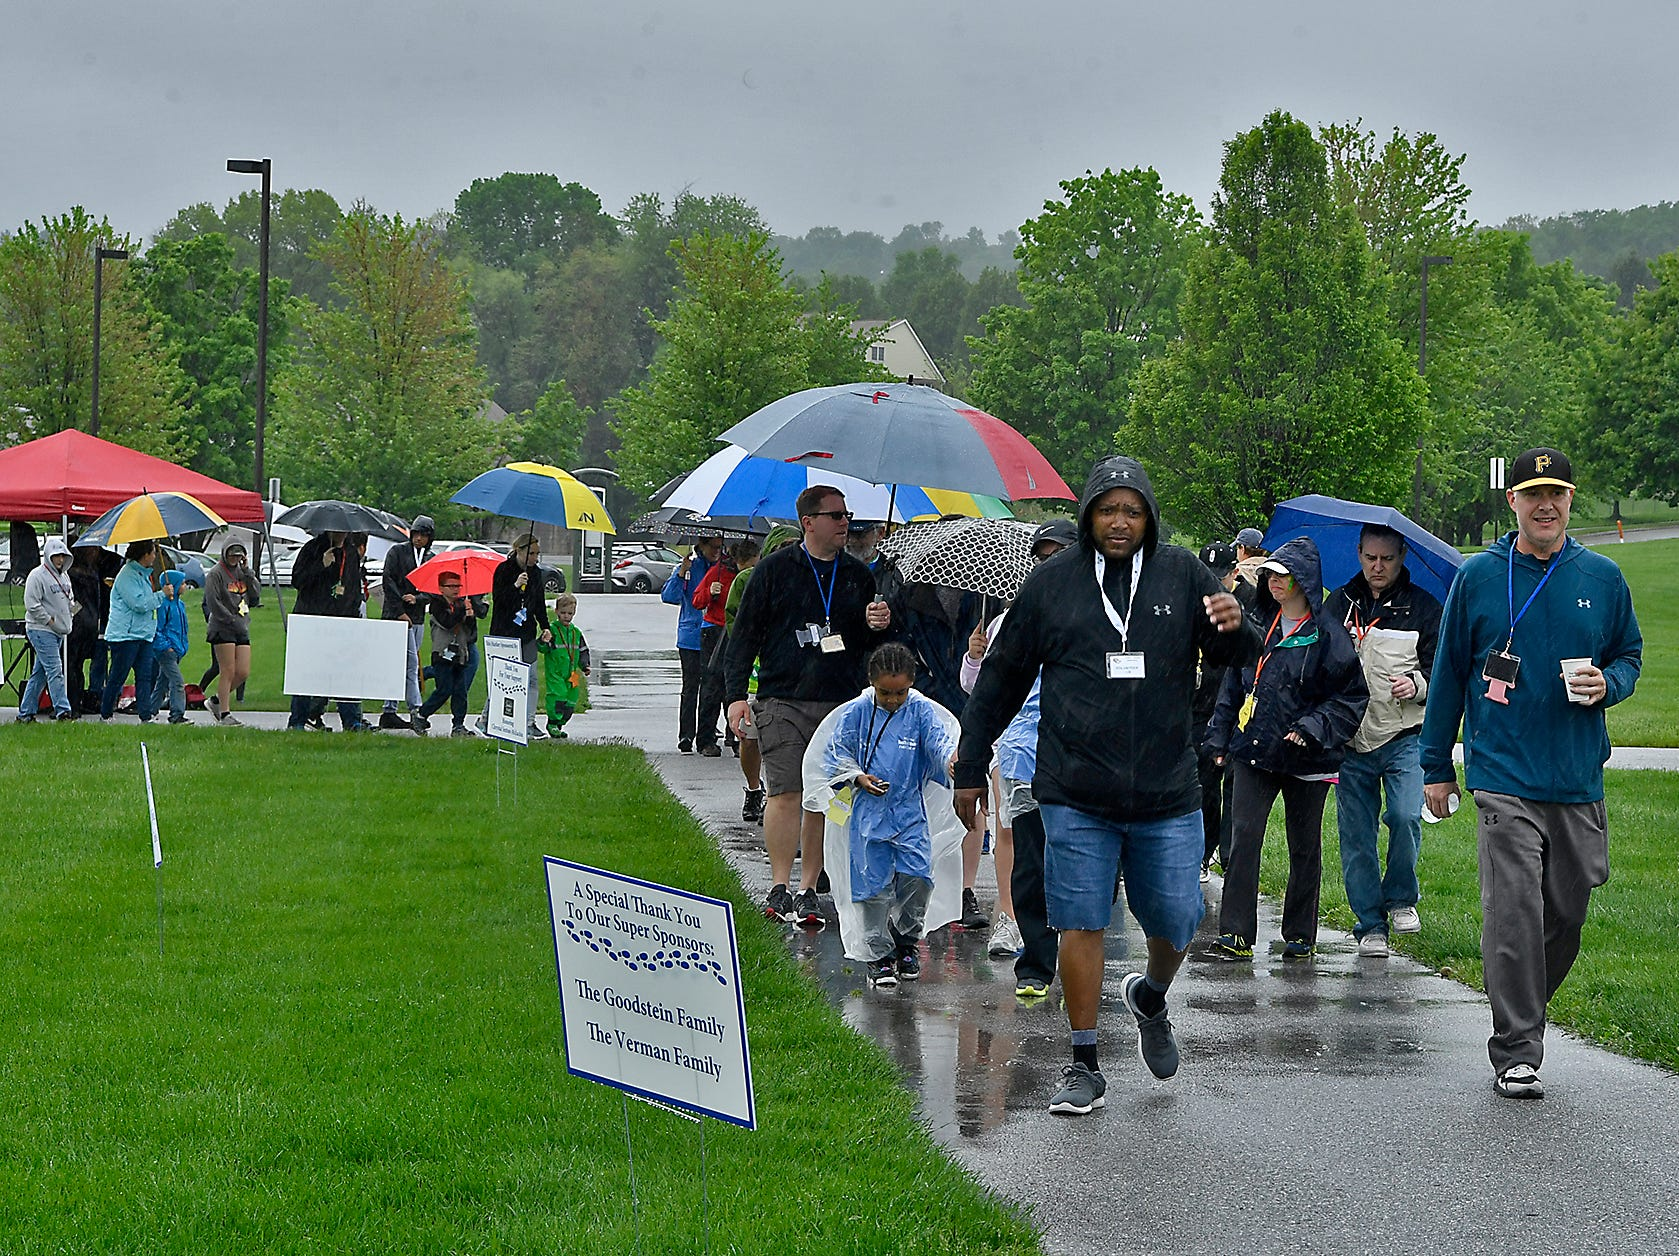 The Jewish Family Services (JFS) hold their 18th annual Hustle 4 Hunger Walkathon at Springettsbury Township Park, Sunday, May 5, 2019.